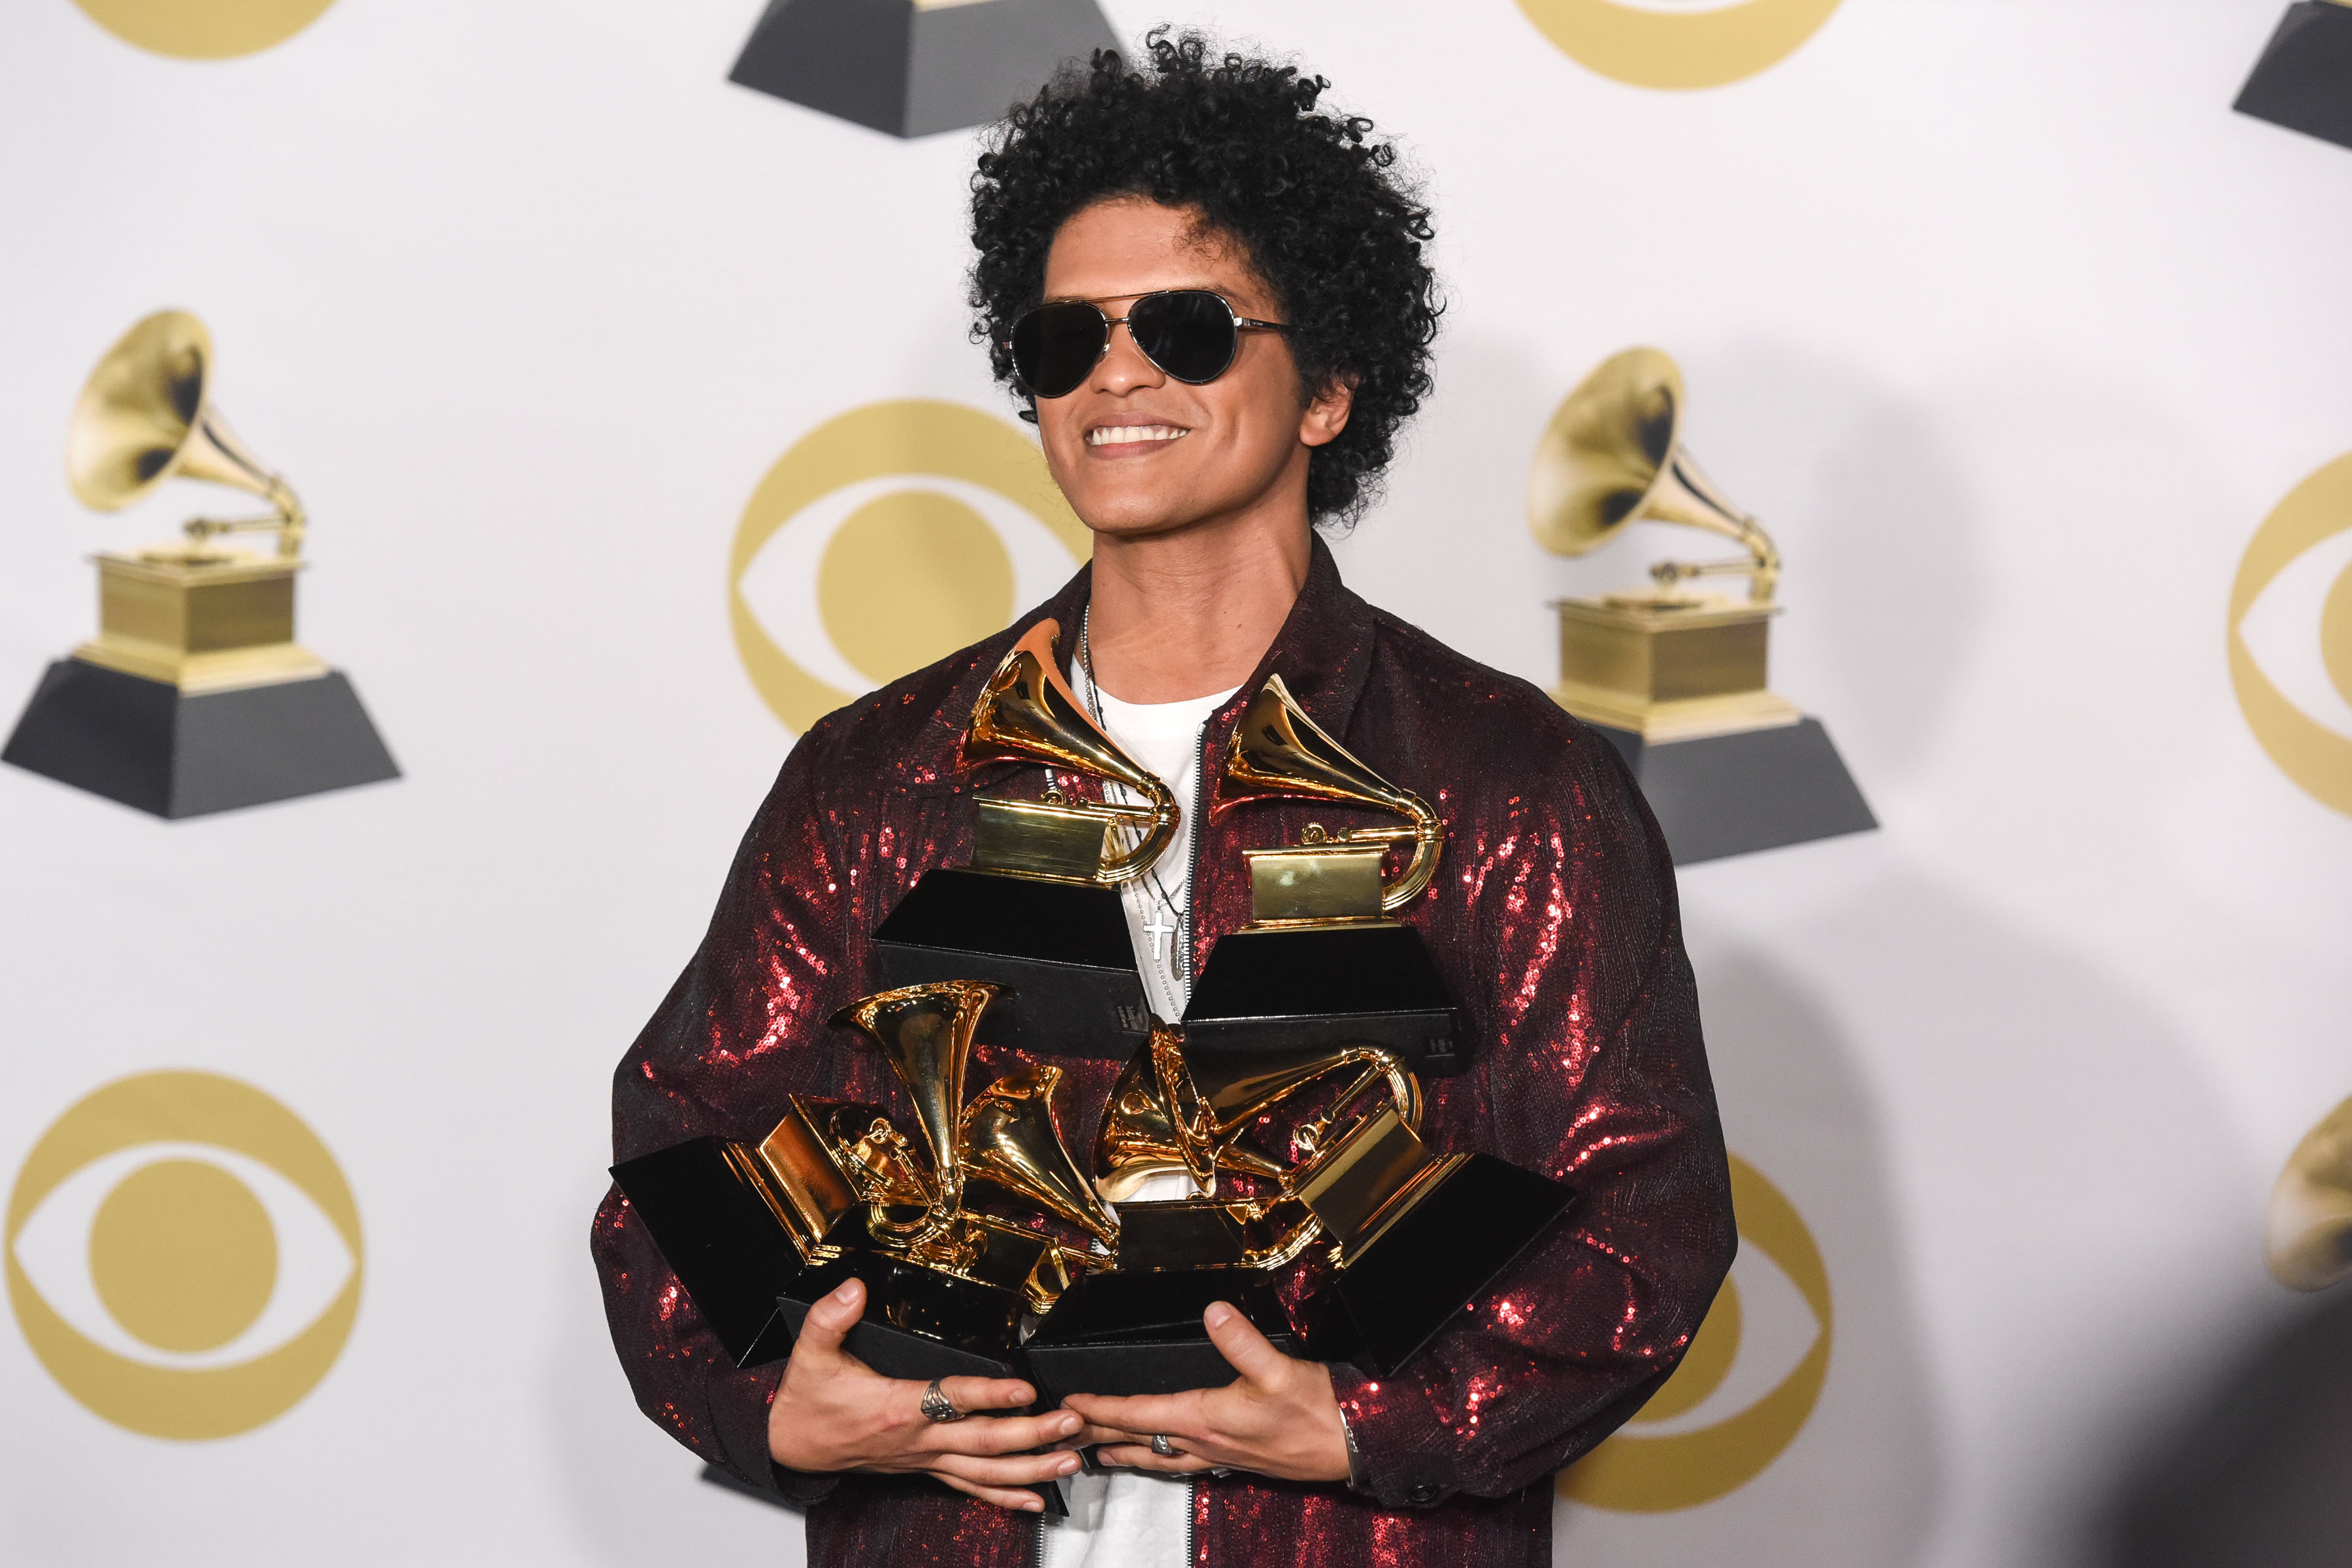 Bruno Mars attends 60th Annual GRAMMY Awards   Press Room at Madison Square Garden in New York City on Jan. 28, 2018.